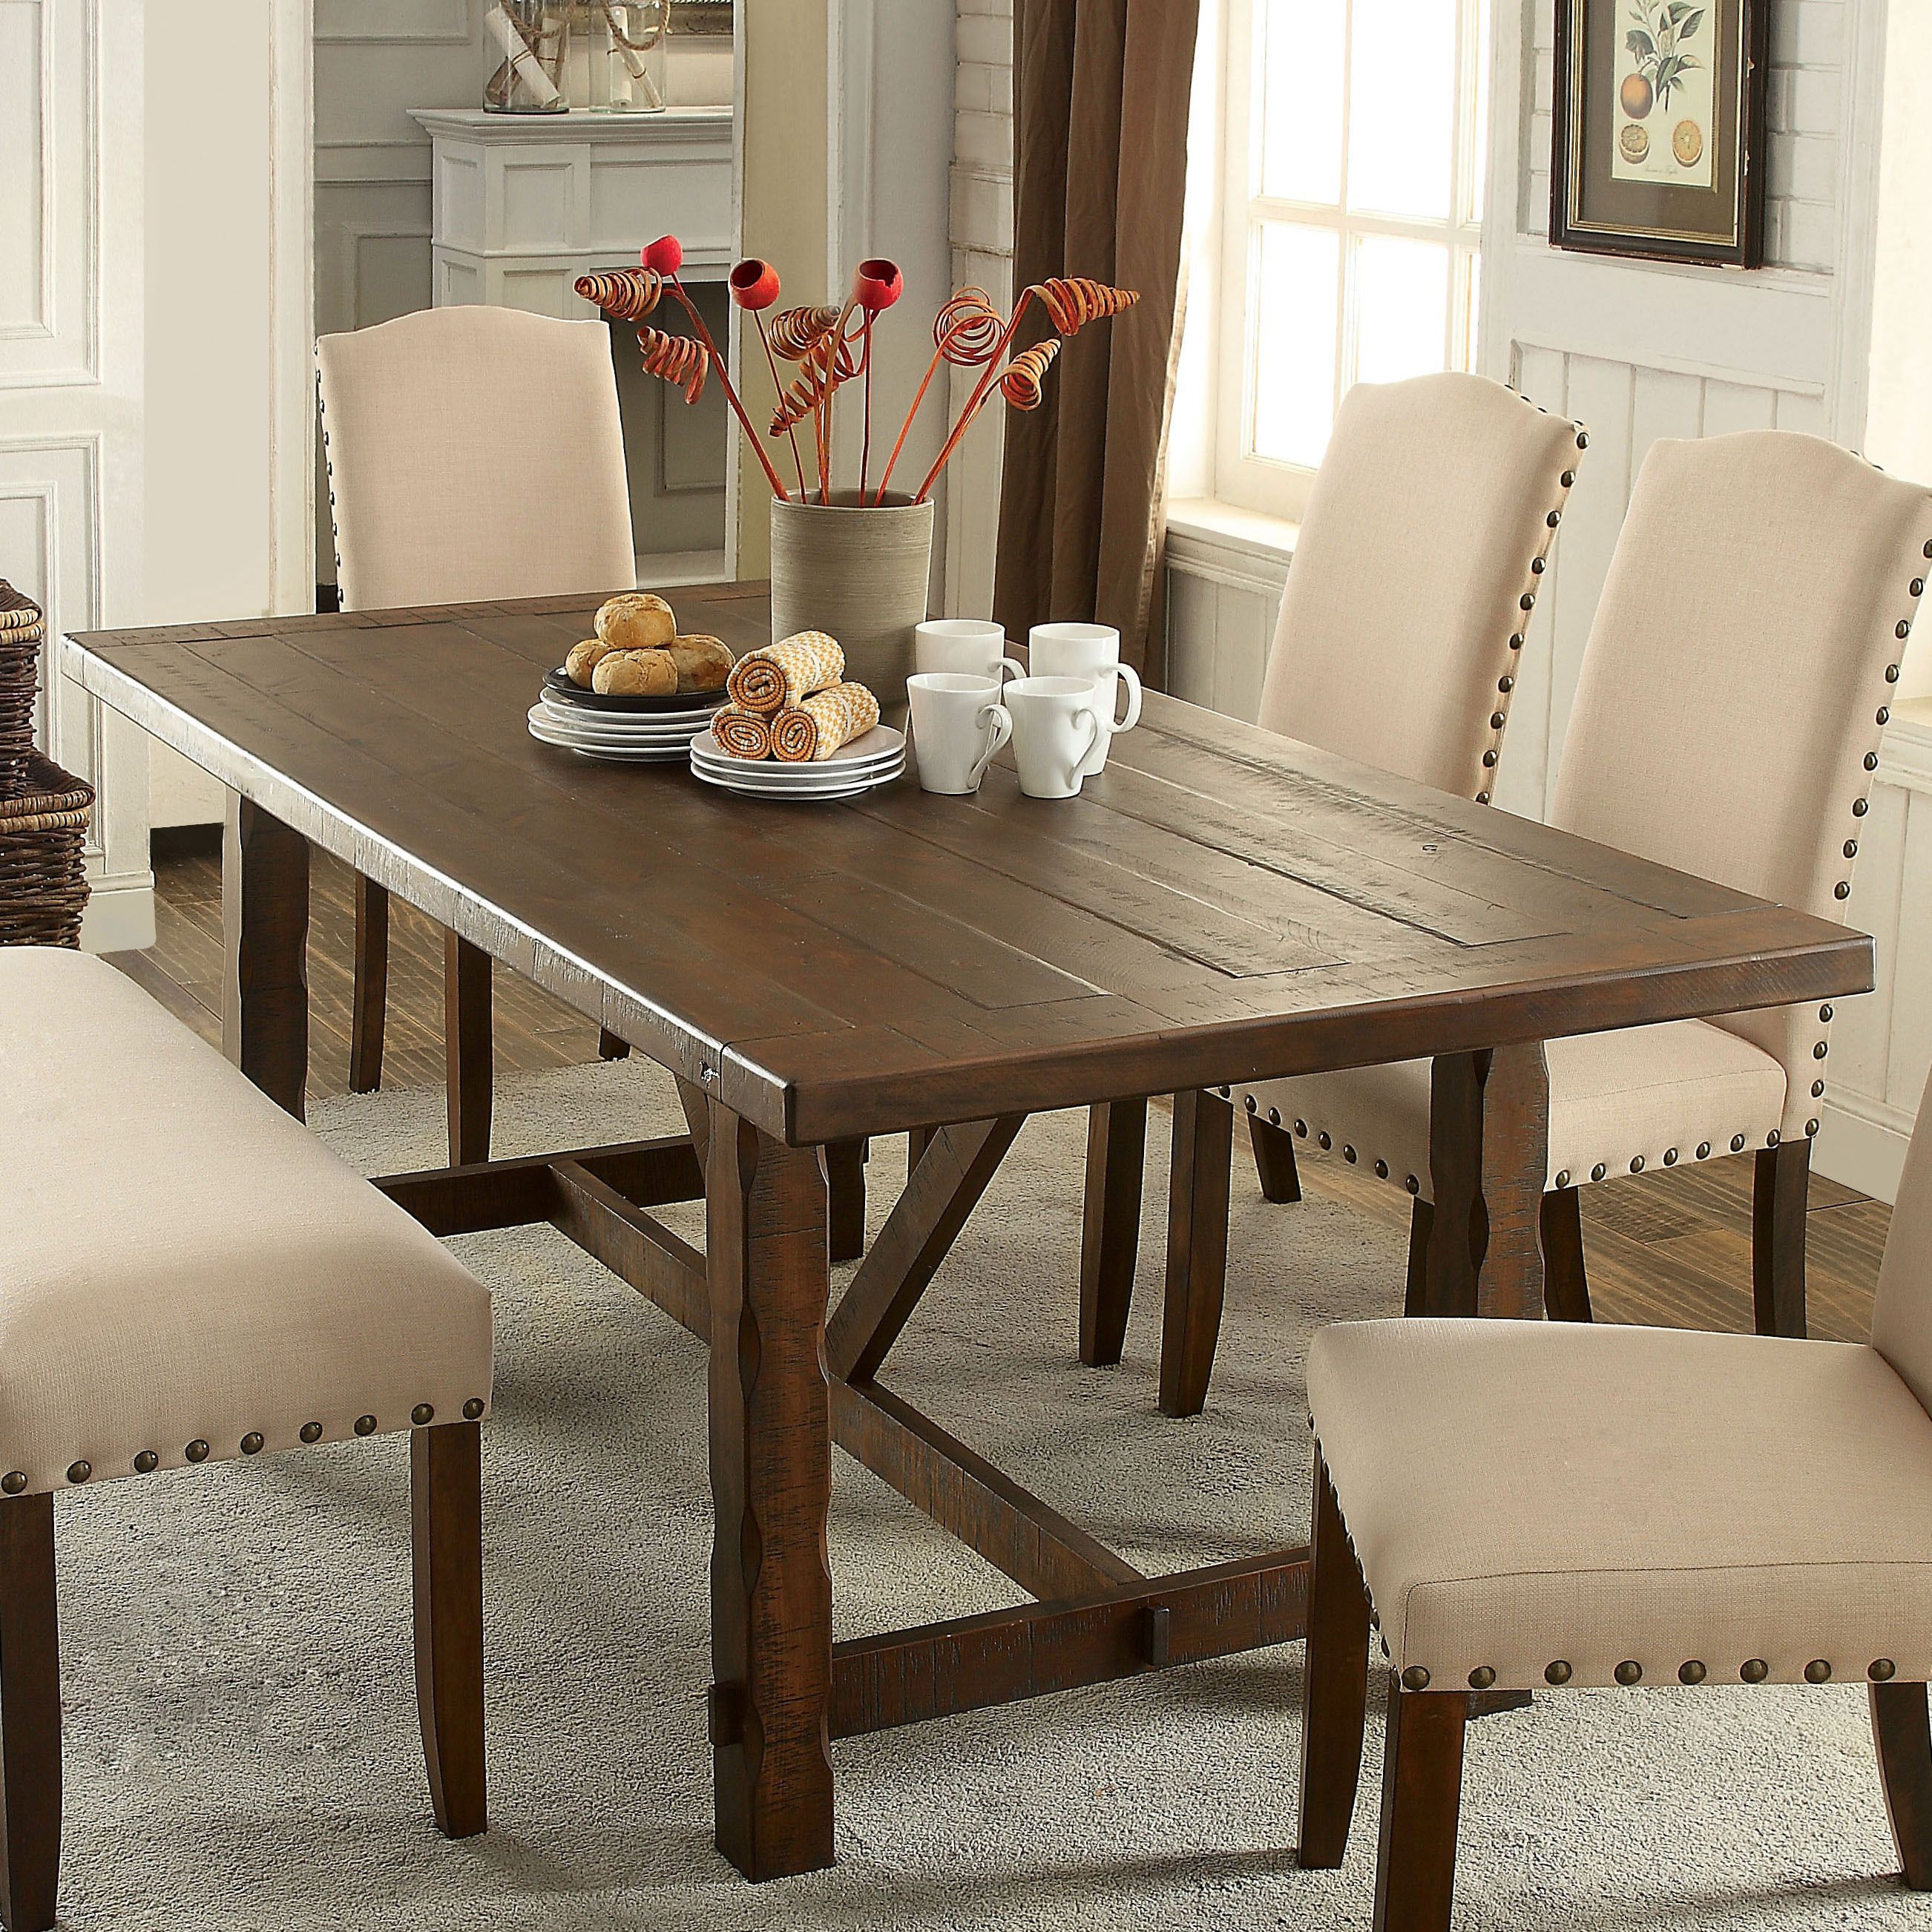 Rustic Dining Room Table With Bench: Wide And Inviting, This Dining Table Is A Gorgeous Display